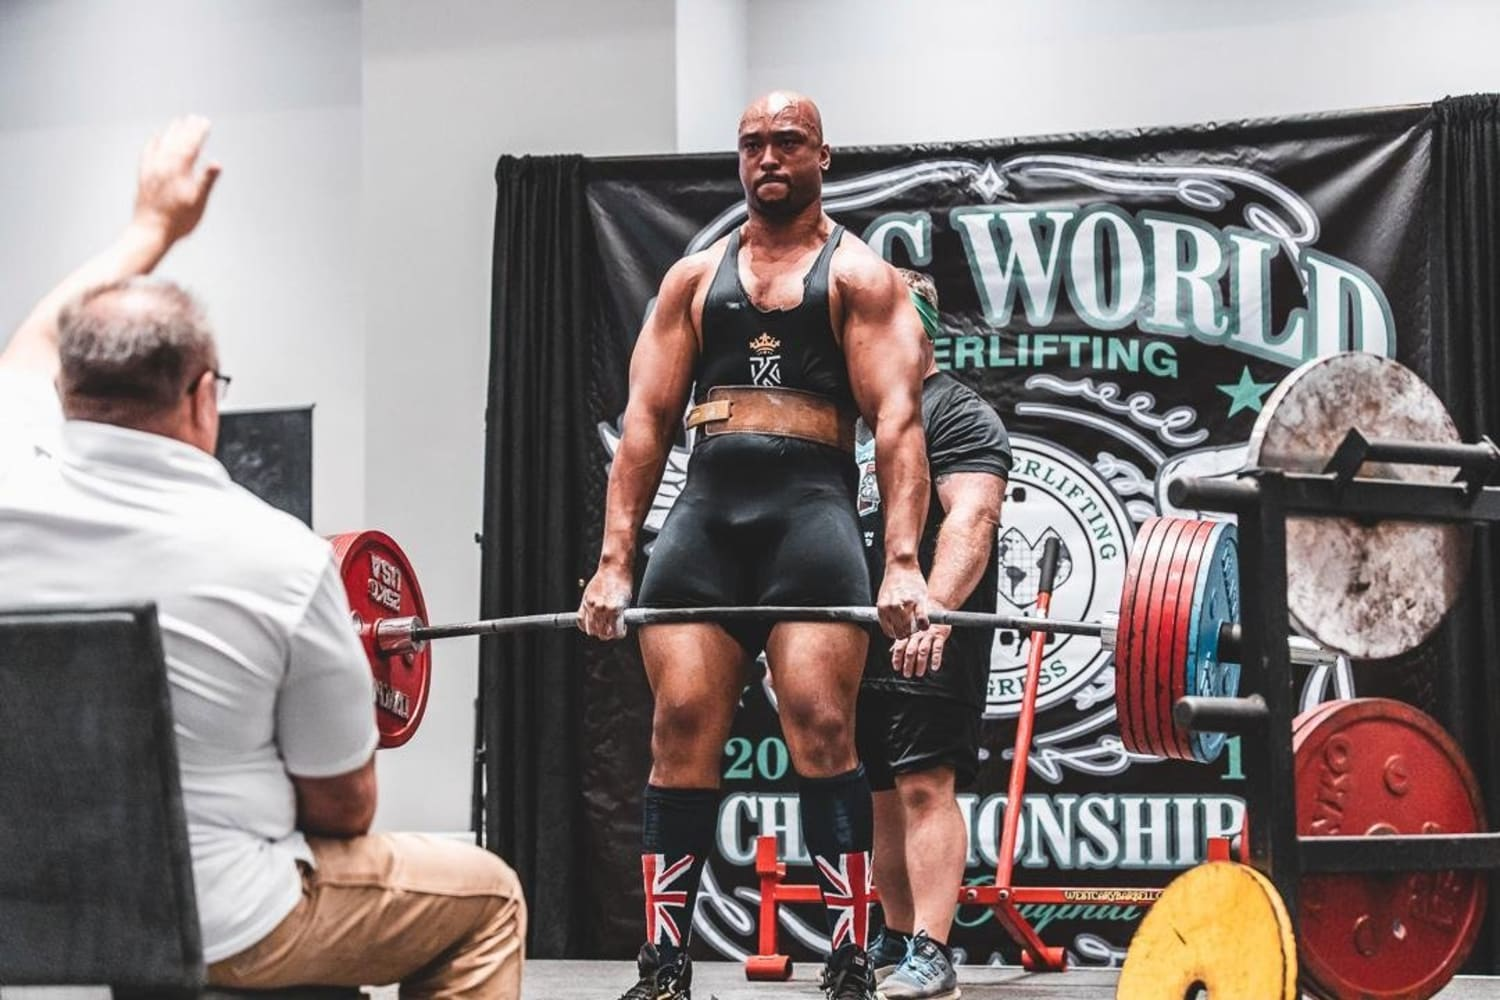 Julian McKerrow: How to become a powerlifting pro